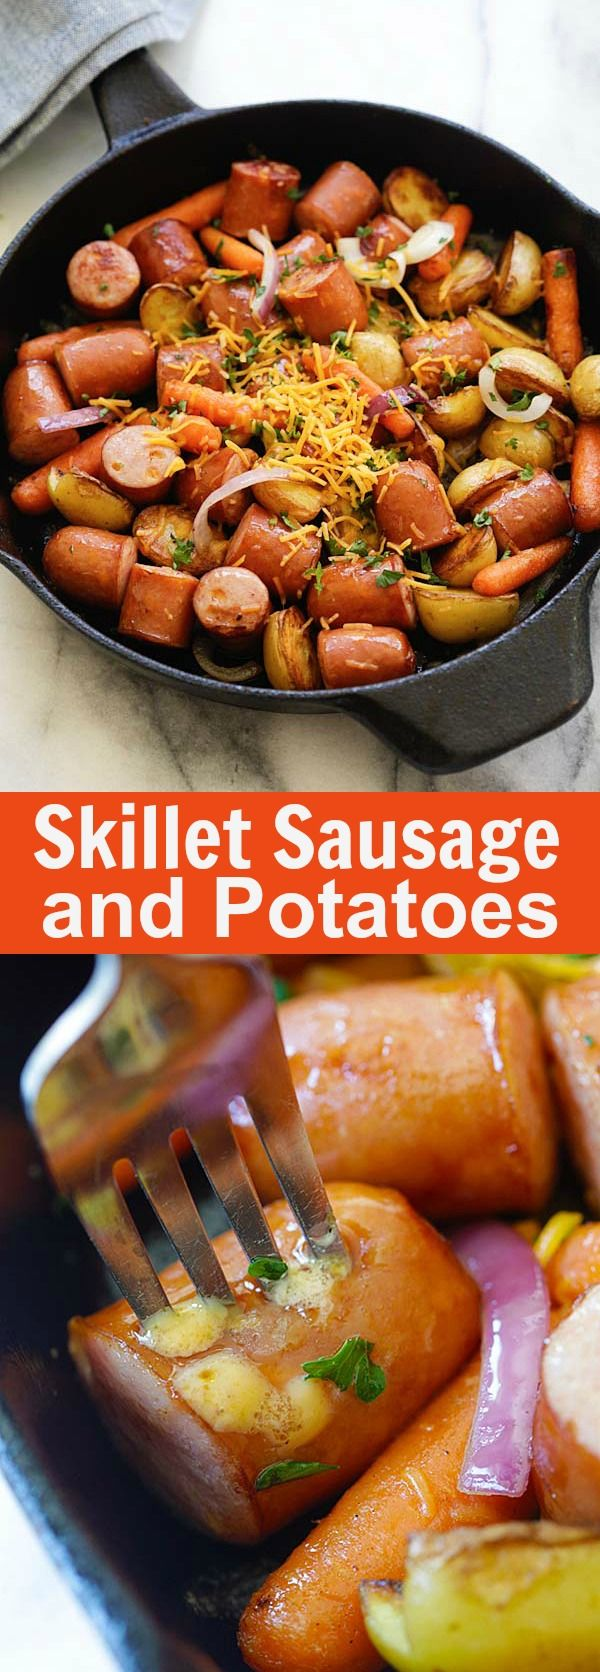 Skillet Sausage and Potatoes – easy and quick smoked sausages with potatoes and carrots on a skillet. Perfect for weekend camping trips | rasamalaysia.com #ad @jvillesausage